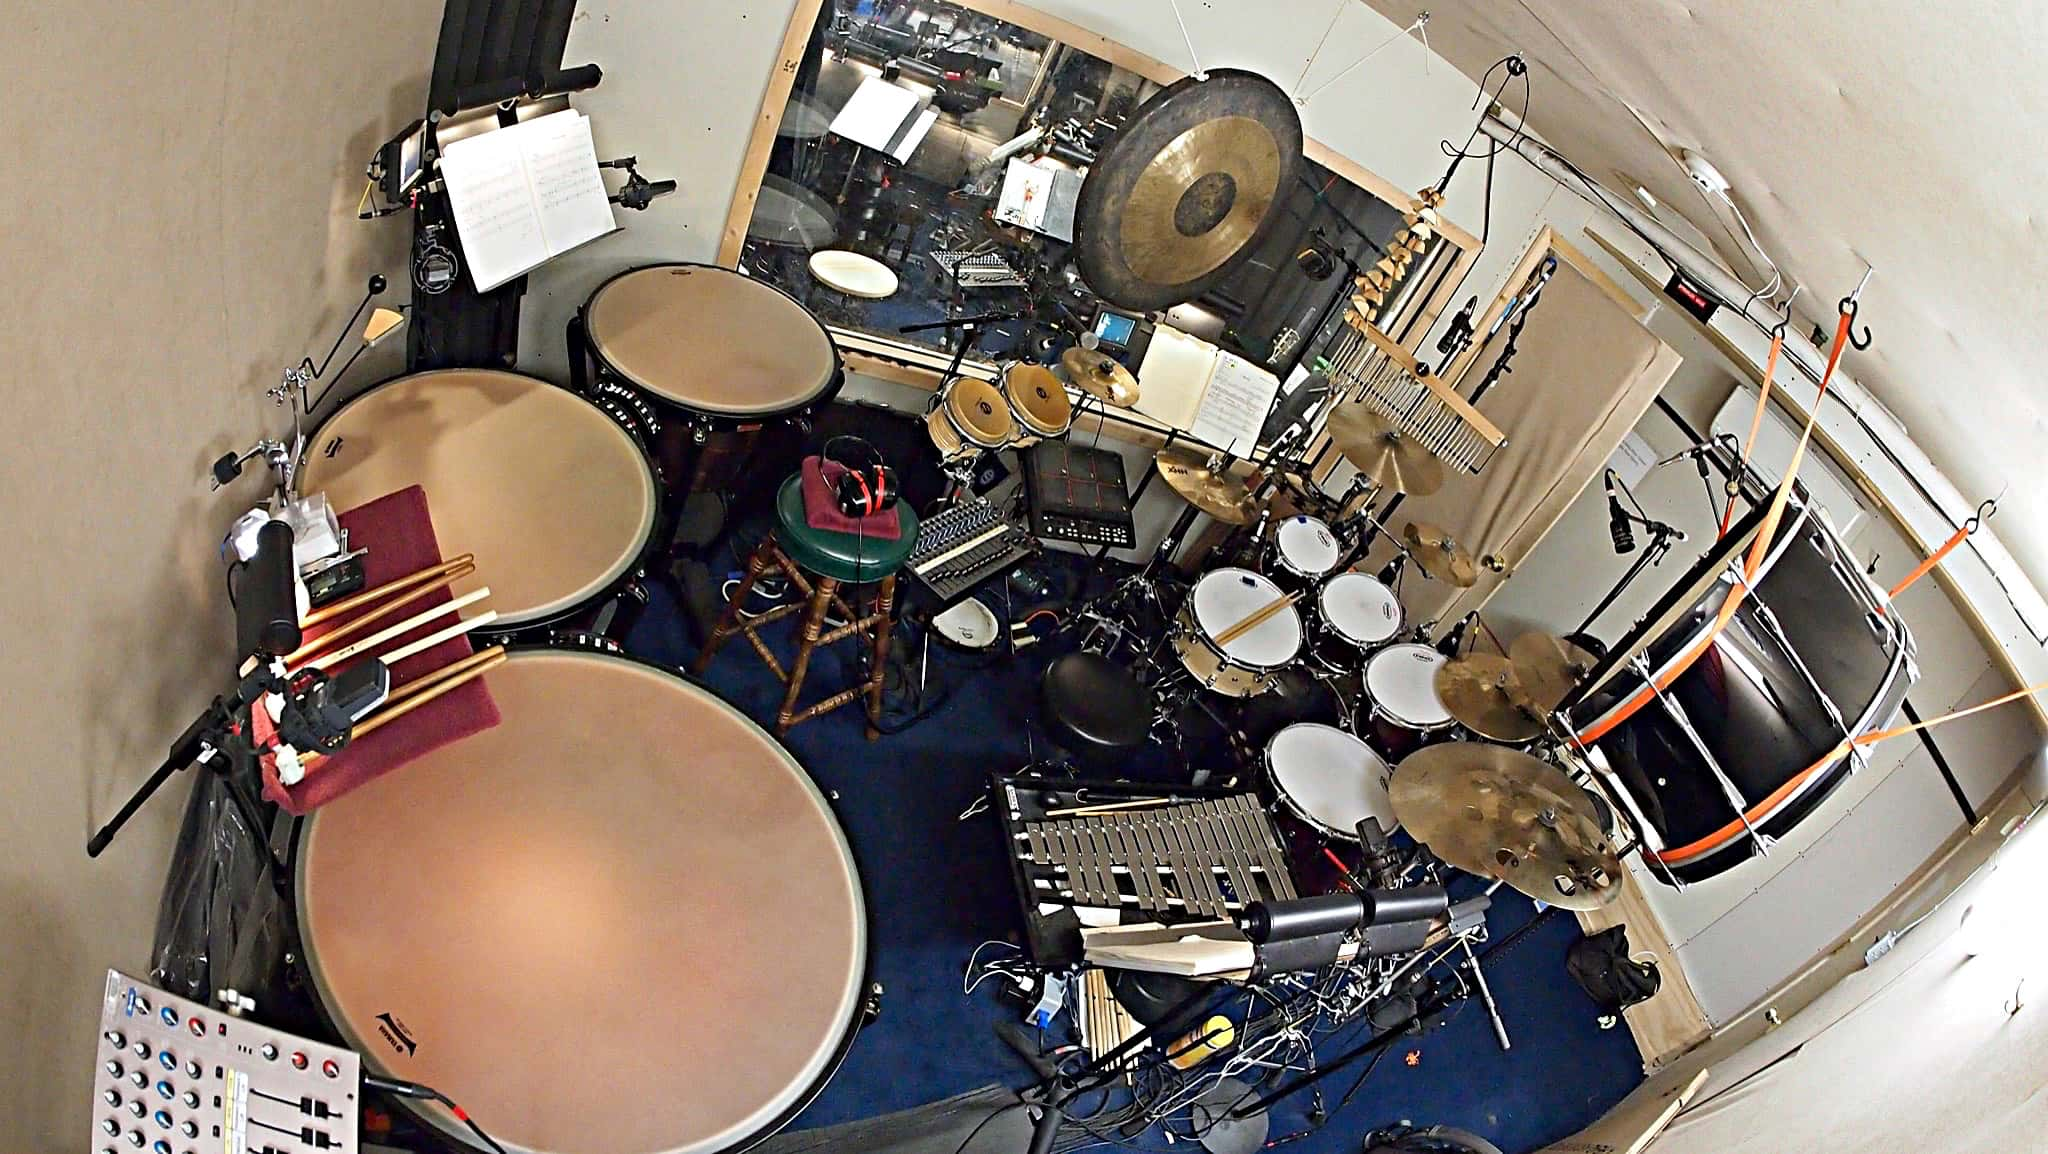 Howard Joines' setup from the 2013-2017 Broadway production of Matilda at the Shubert Theater.